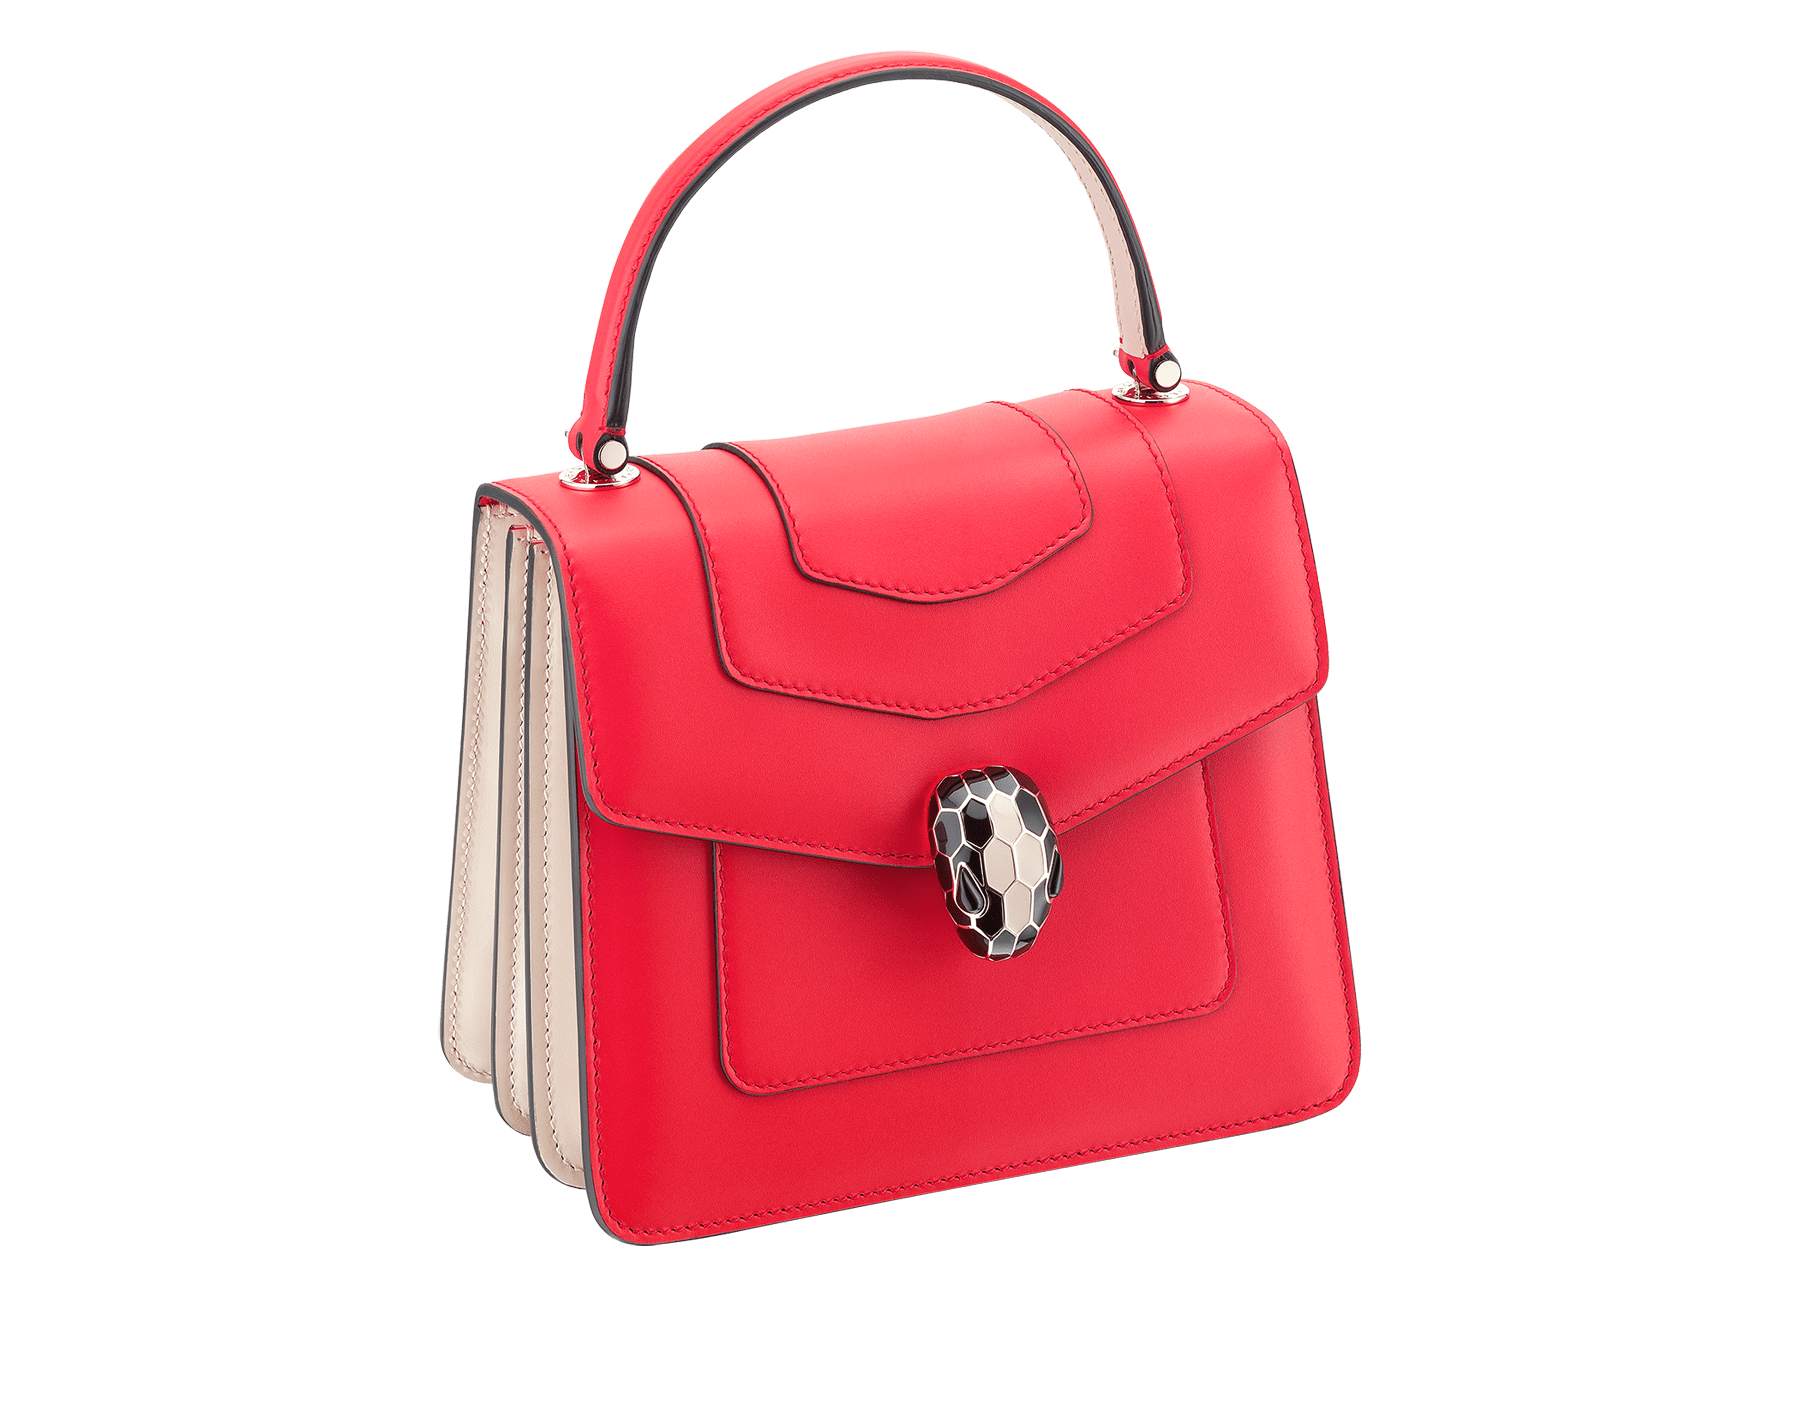 Serpenti Forever crossbody bag in sea star coral smooth calf leather body and milky opal calf leather sides. Snakehead closure in light gold plated brass decorated with milky opal and black enamel, and black onyx eyes. 287961 image 2